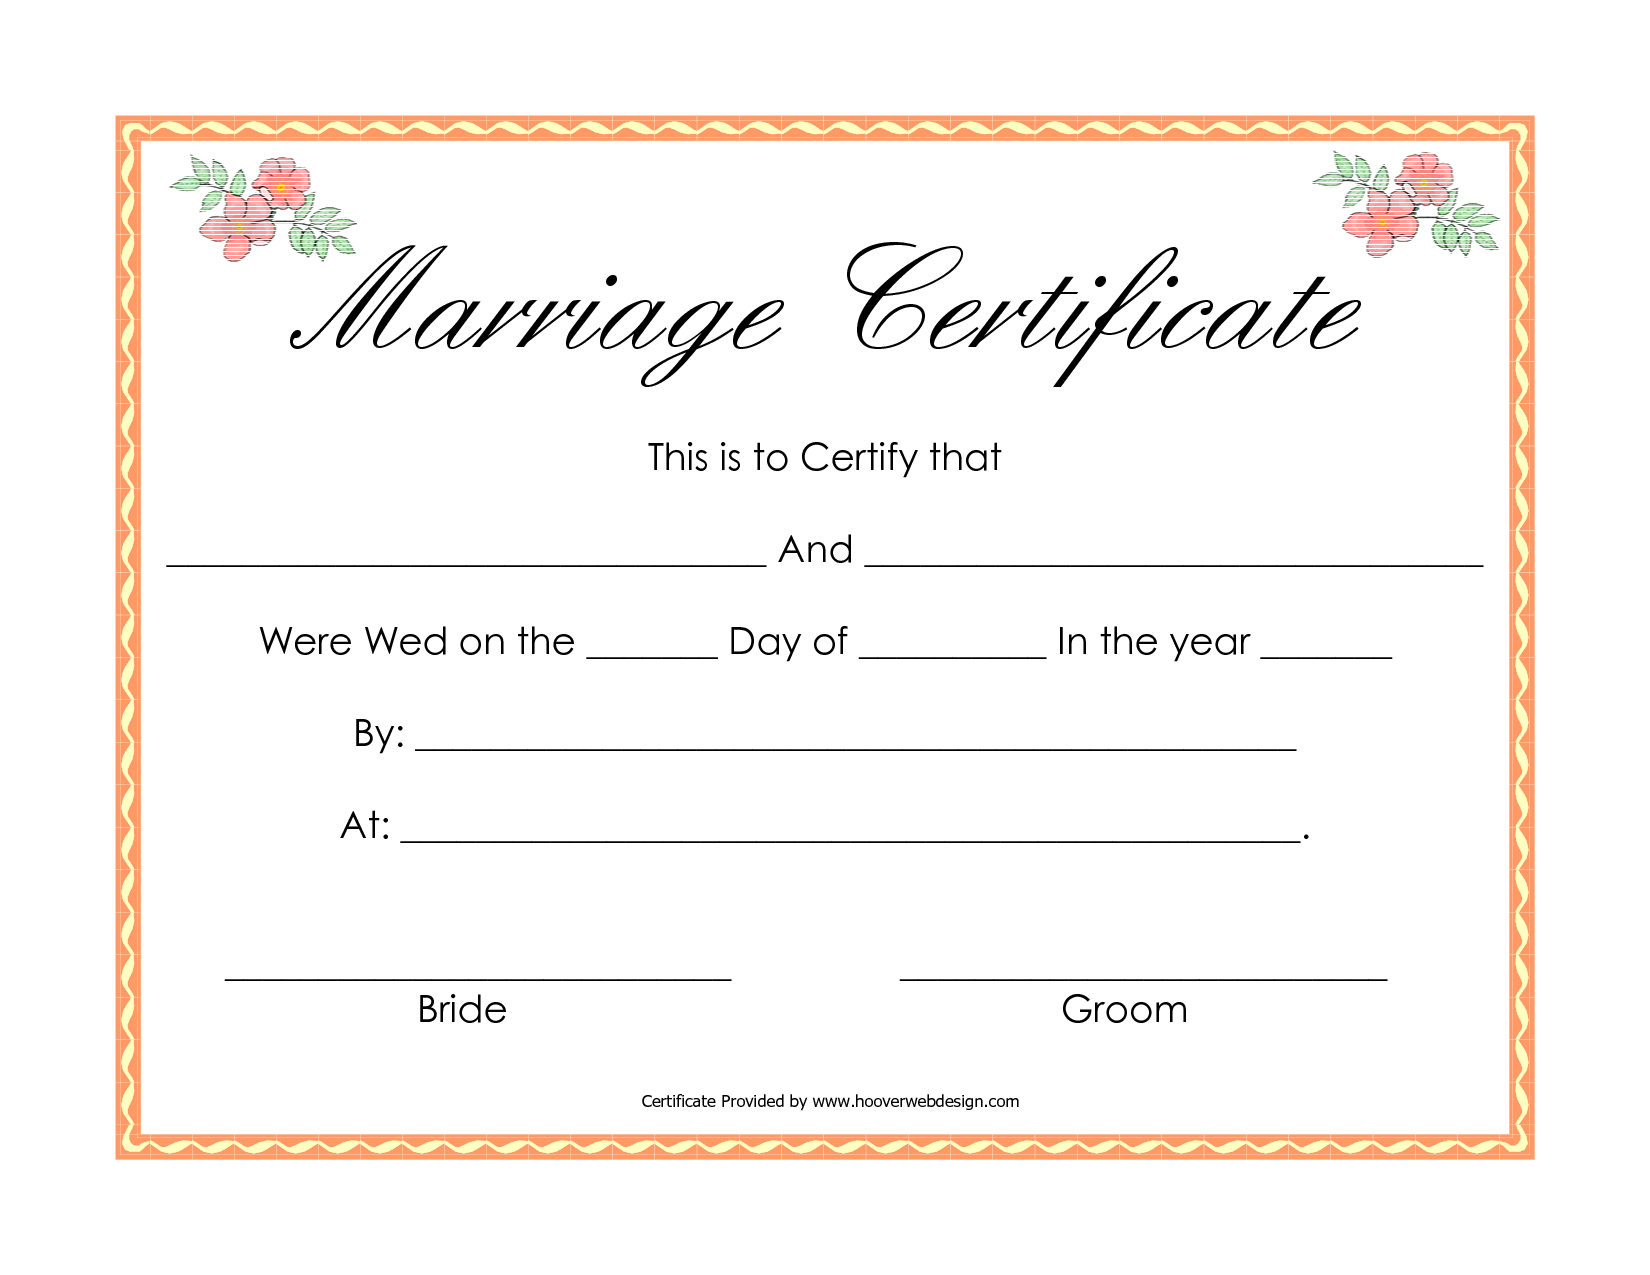 Fake Marriage Certificate   Angela   Marriage Certificate, Online - Fake Marriage Certificate Printable Free